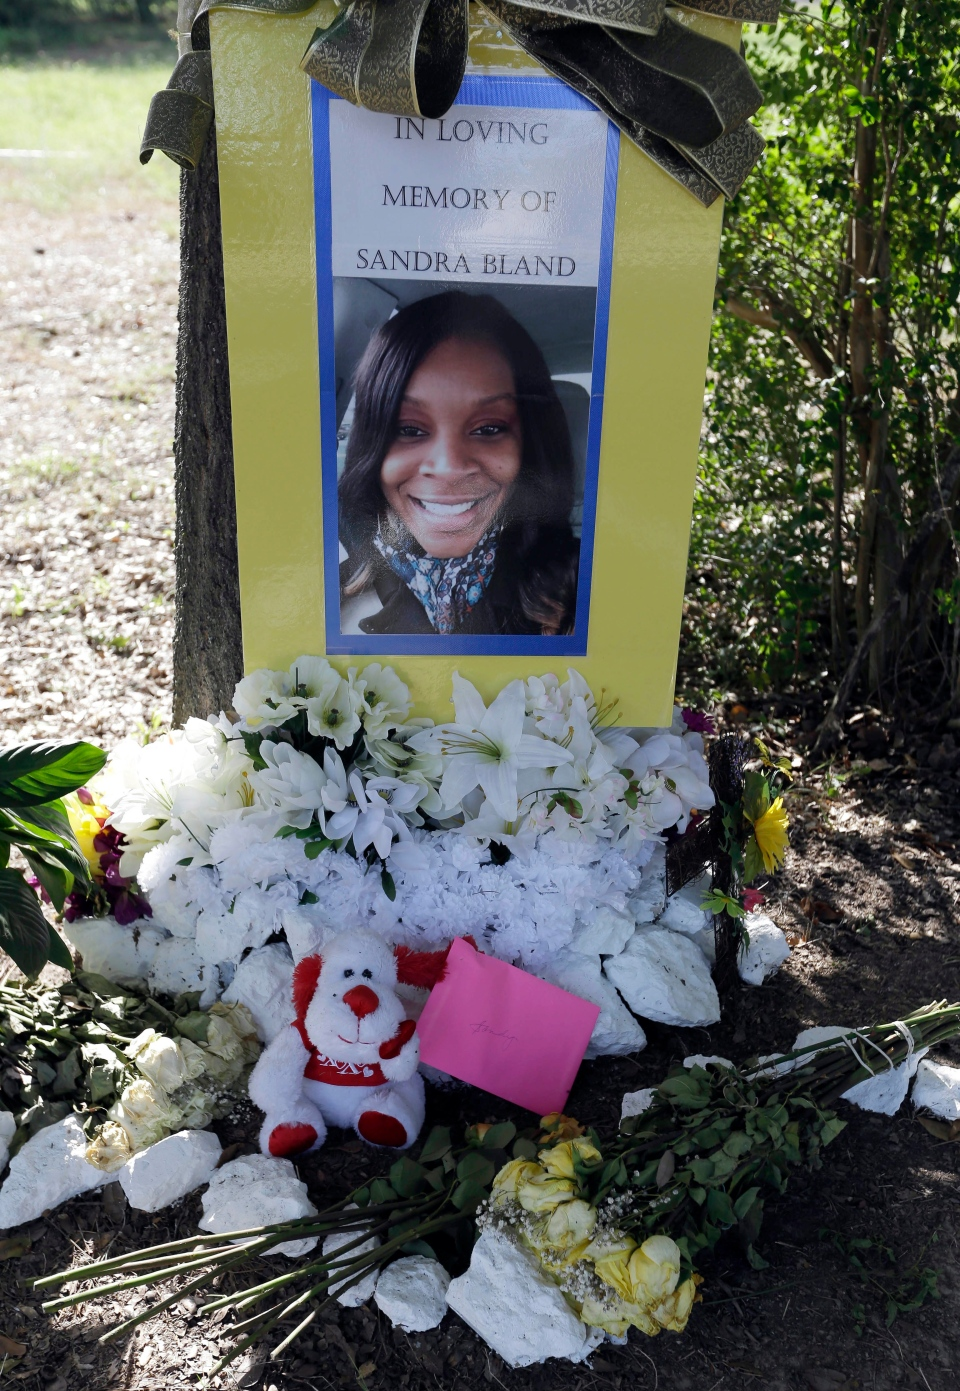 Flowers and other items adorn a memorial for Sandra Bland near Prairie View A&M University, Tuesday, July 21, 2015, in Prairie View, Texas. (AP / Pat Sullivan)